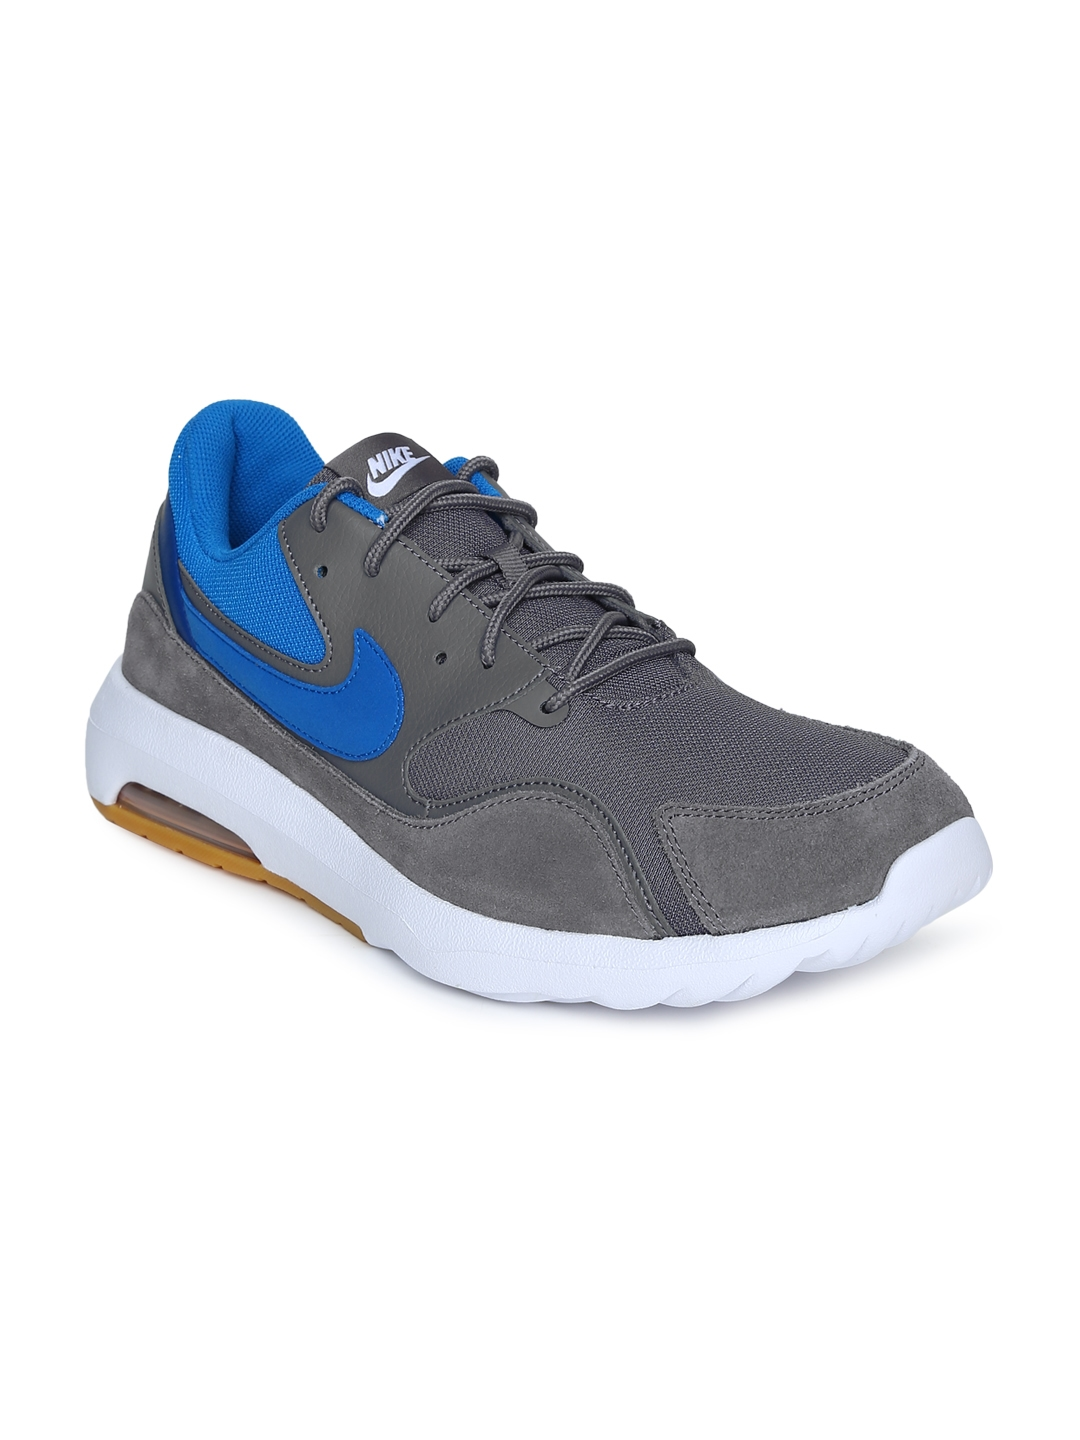 261958c1a09 Buy Nike Men Grey   Blue AIR MAX NOSTALGIC Running Shoes - Sports Shoes for  Men 4330872